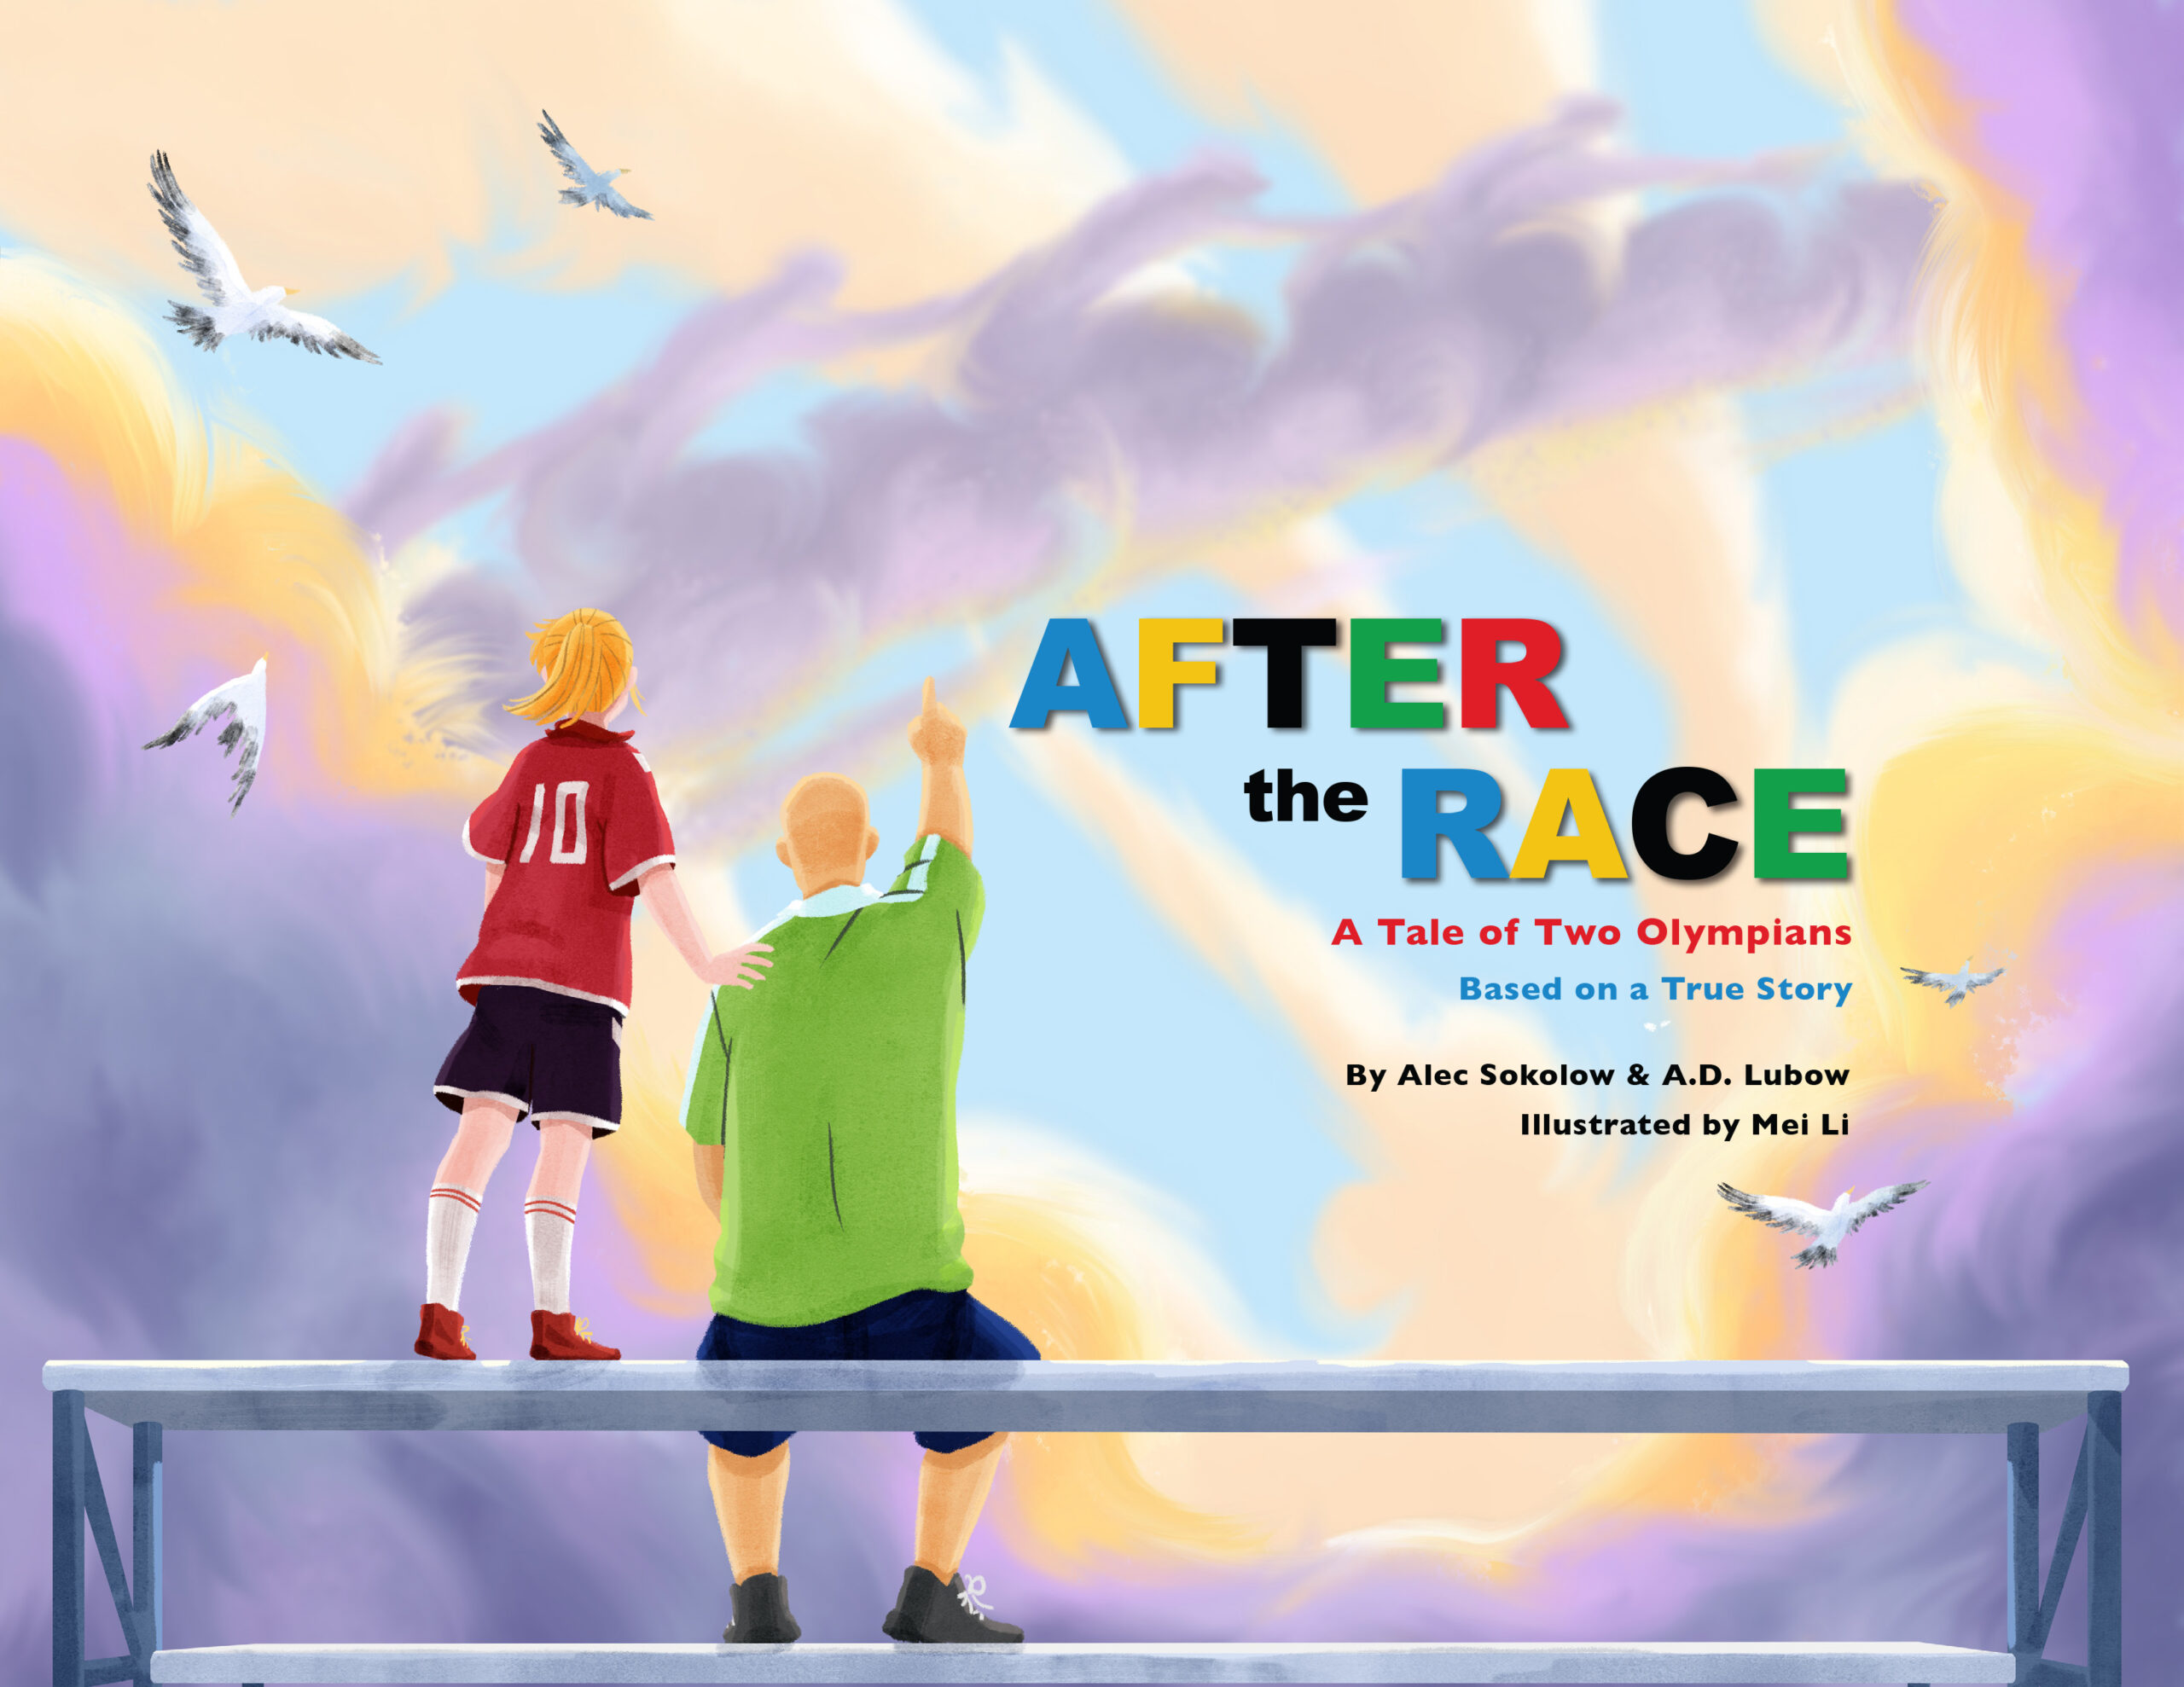 AFTER THE RACE: A Tale of Two Olympians